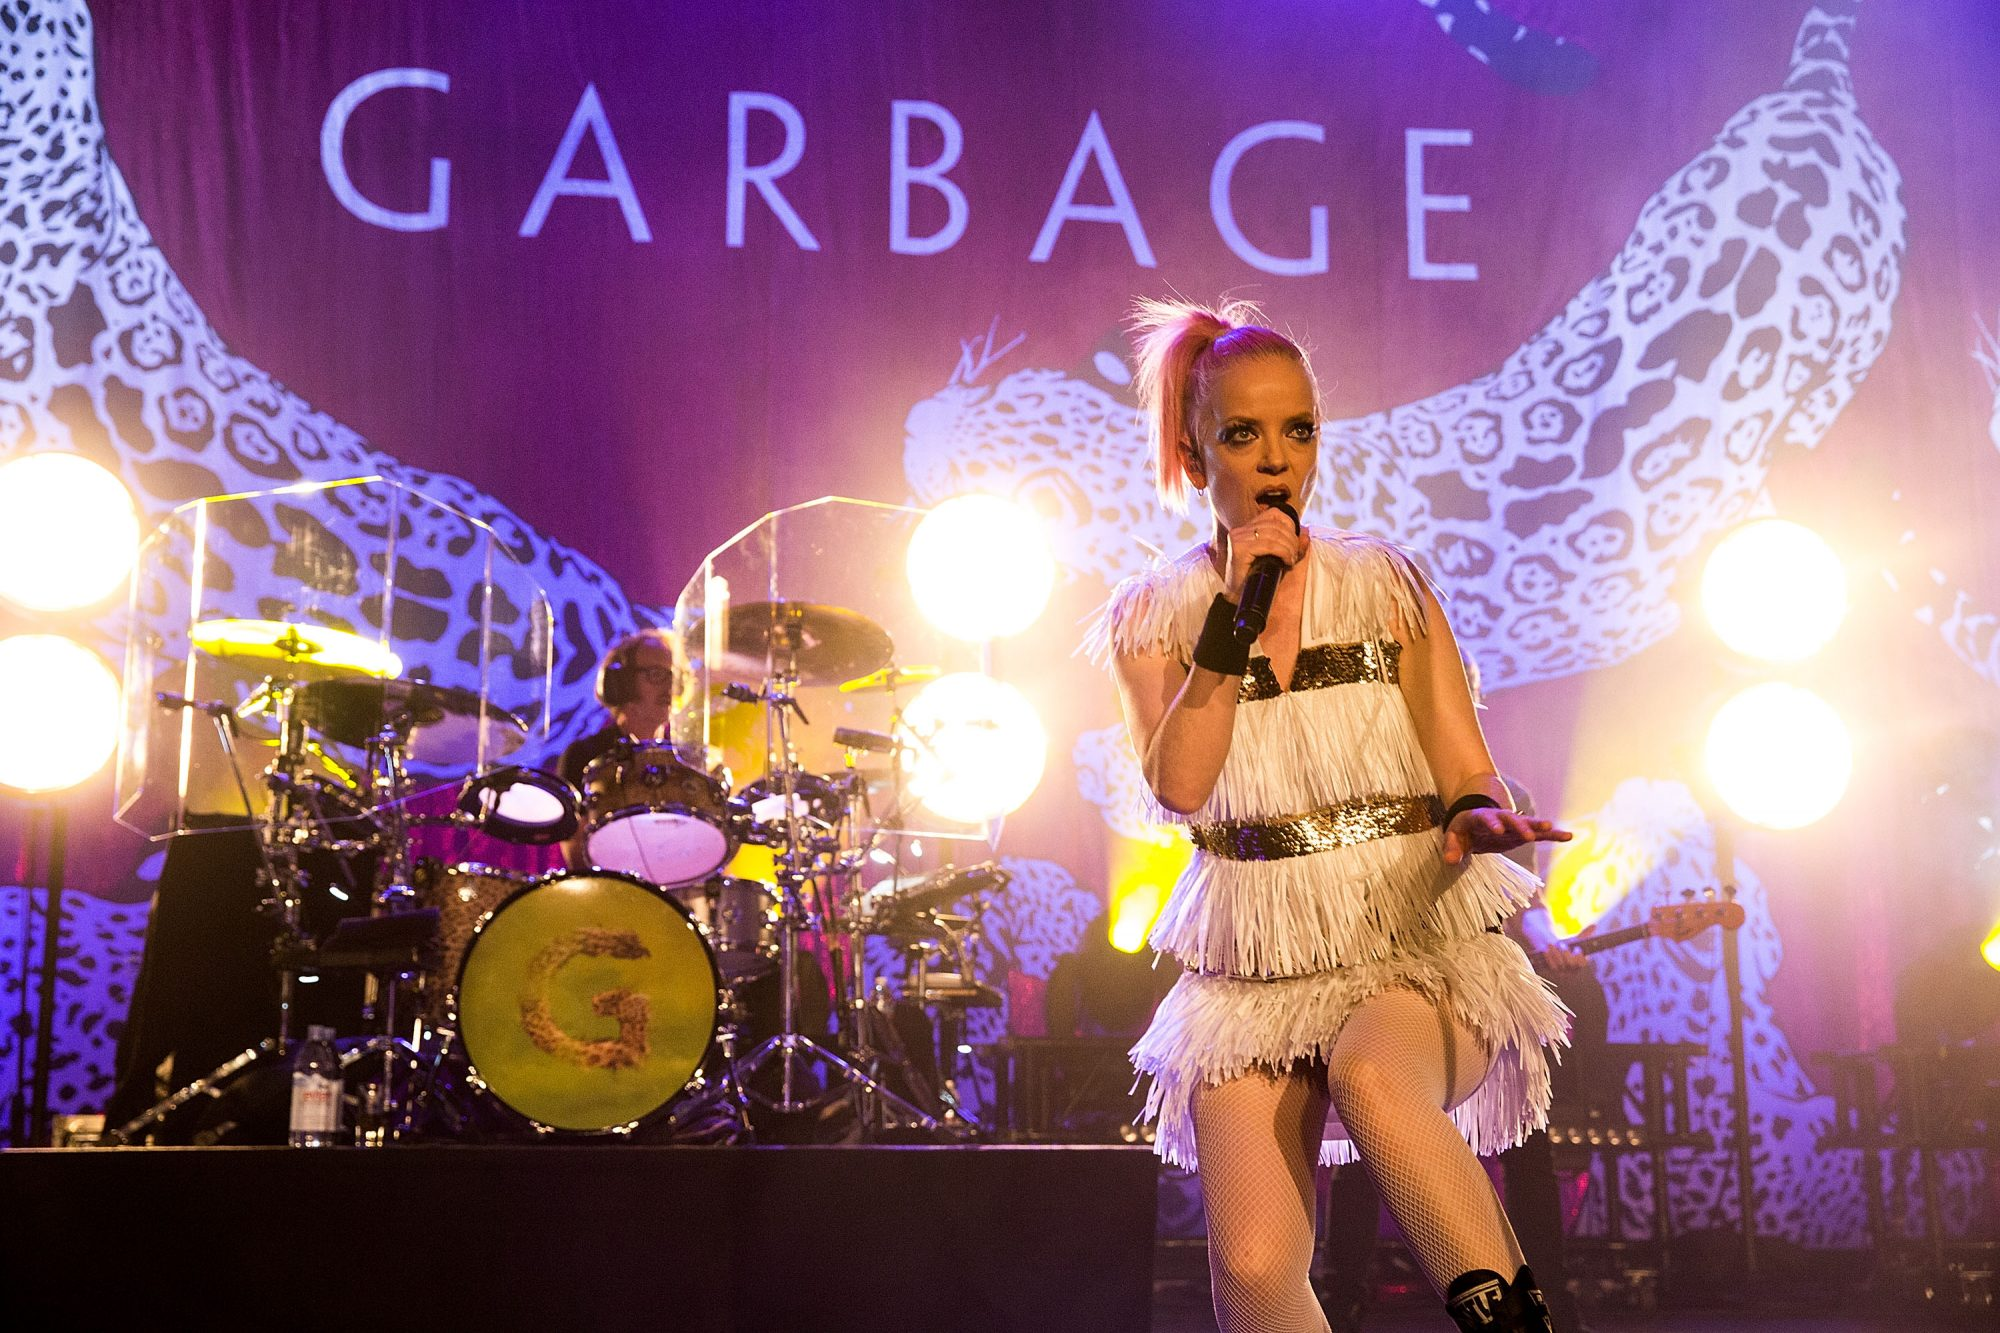 Garbage In Concert- Seattle, WA